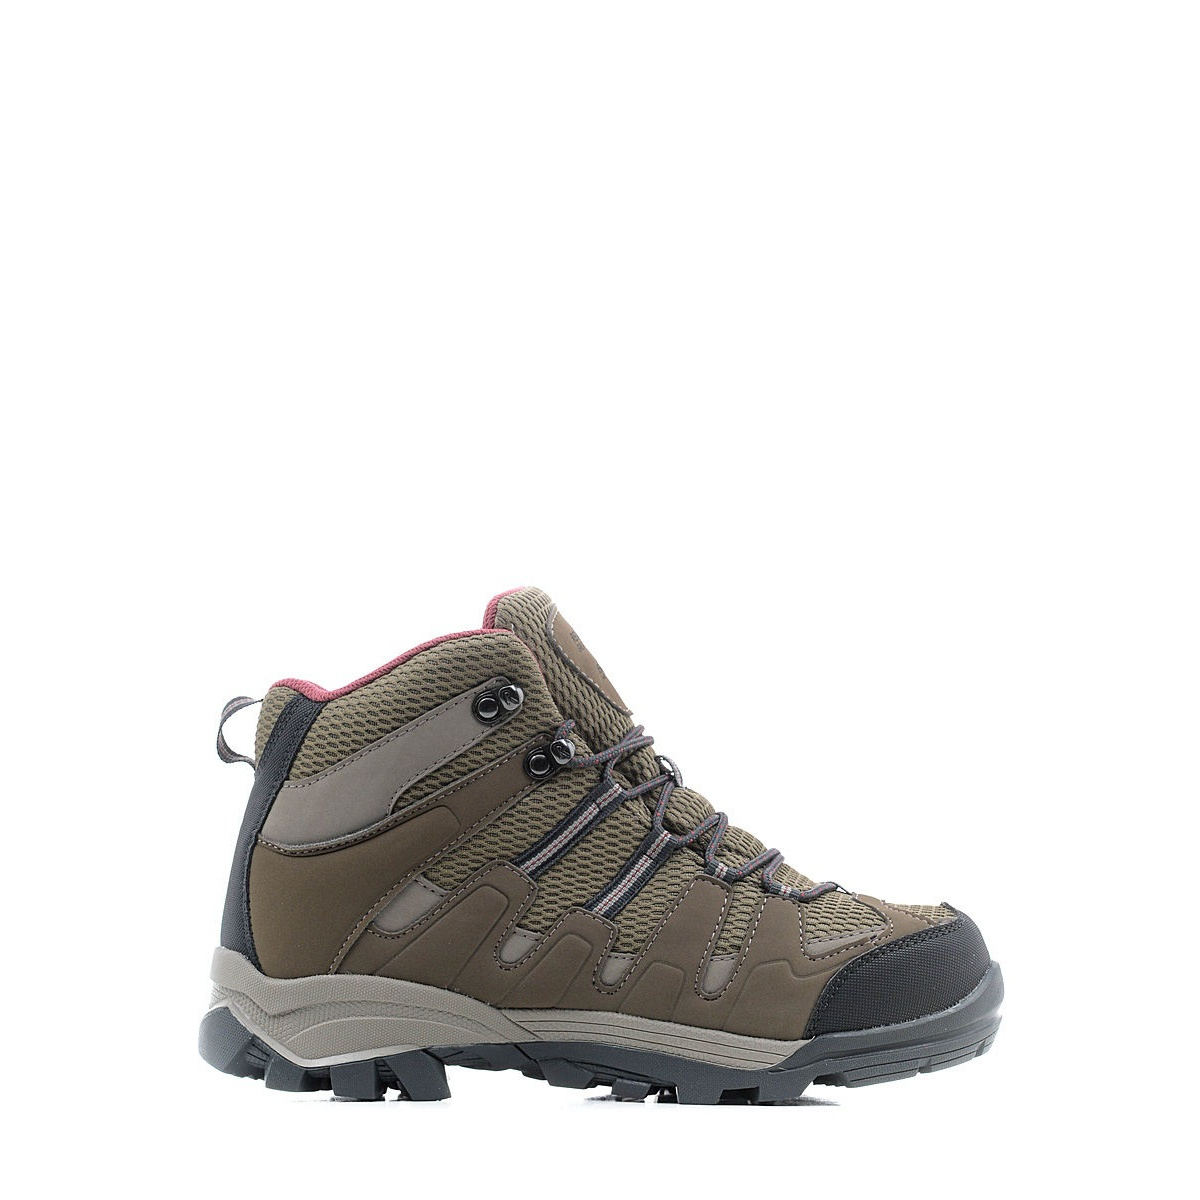 Excellent Above All, You Want A Comfortable Boot Thats Cozy Enough To Wear In The Lodge And Possibly Even To Bed In Short, Just Like With Snowboards, You Want The Best Snowboard Boots  S Super Lace Closure